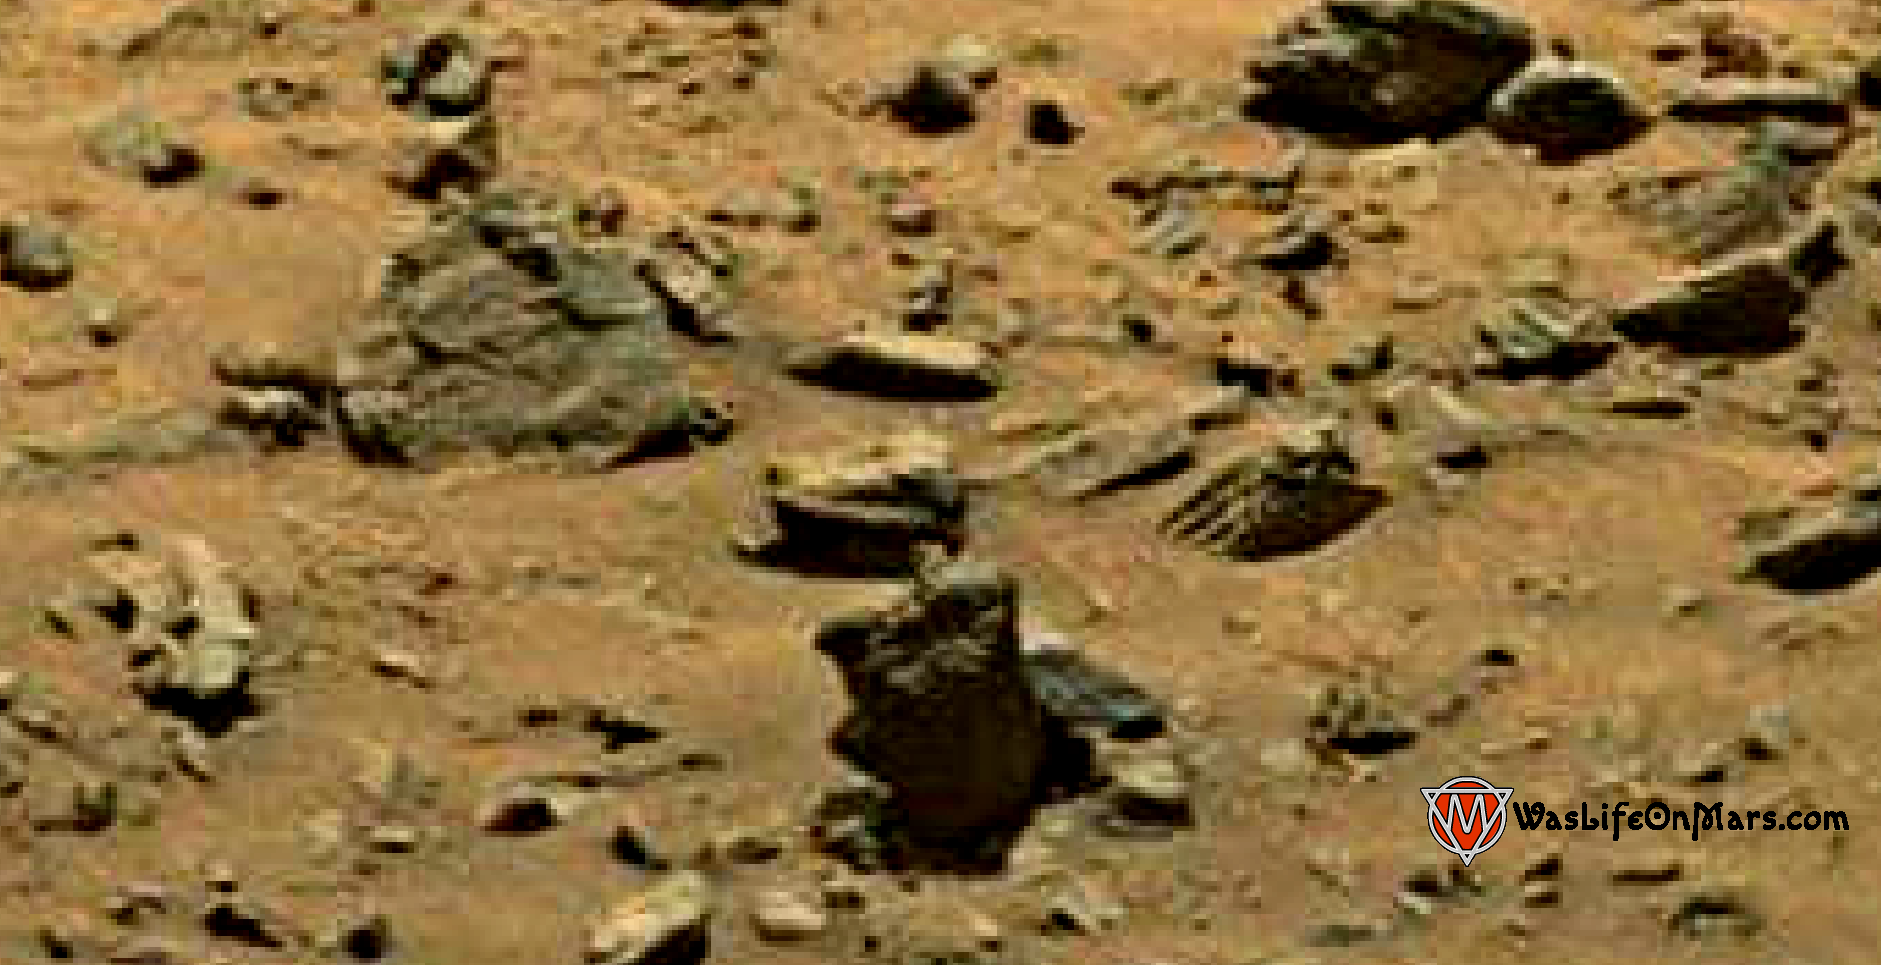 mars sol 1399 anomaly artifacts 4 was life on mars